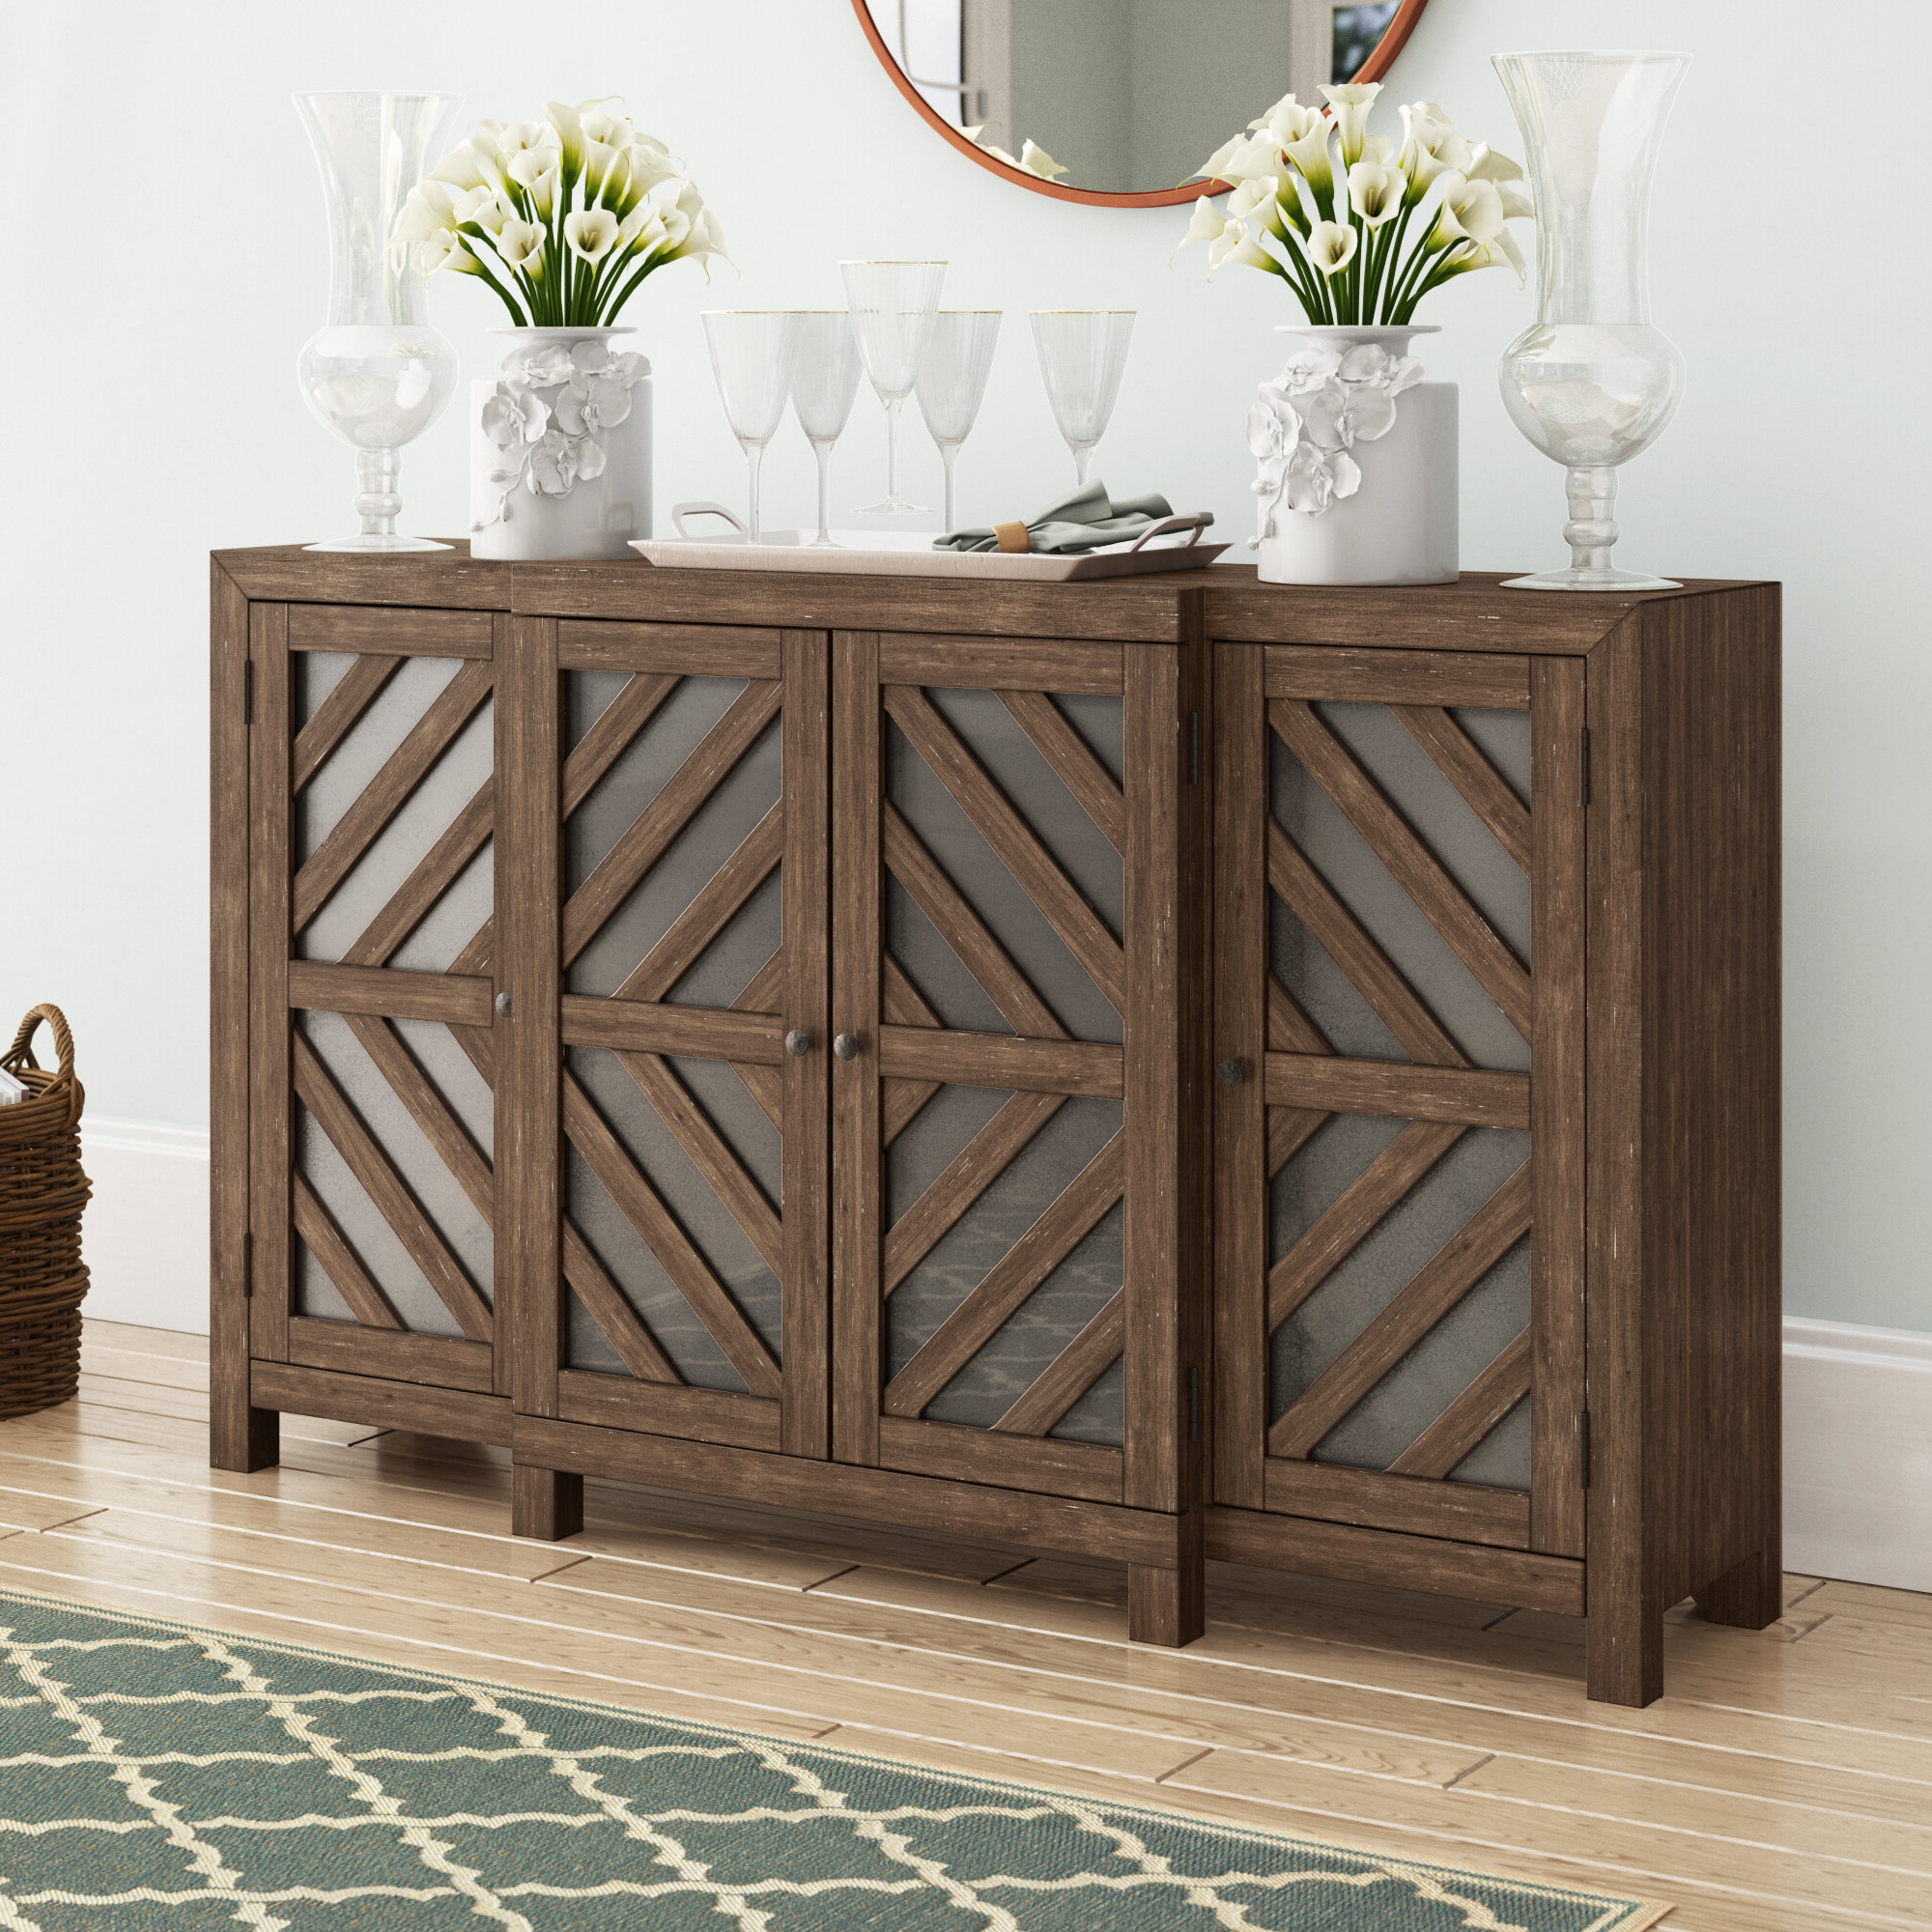 Fashionable 70 Inch Credenza You'll Love In 2019 (Gallery 5 of 20)